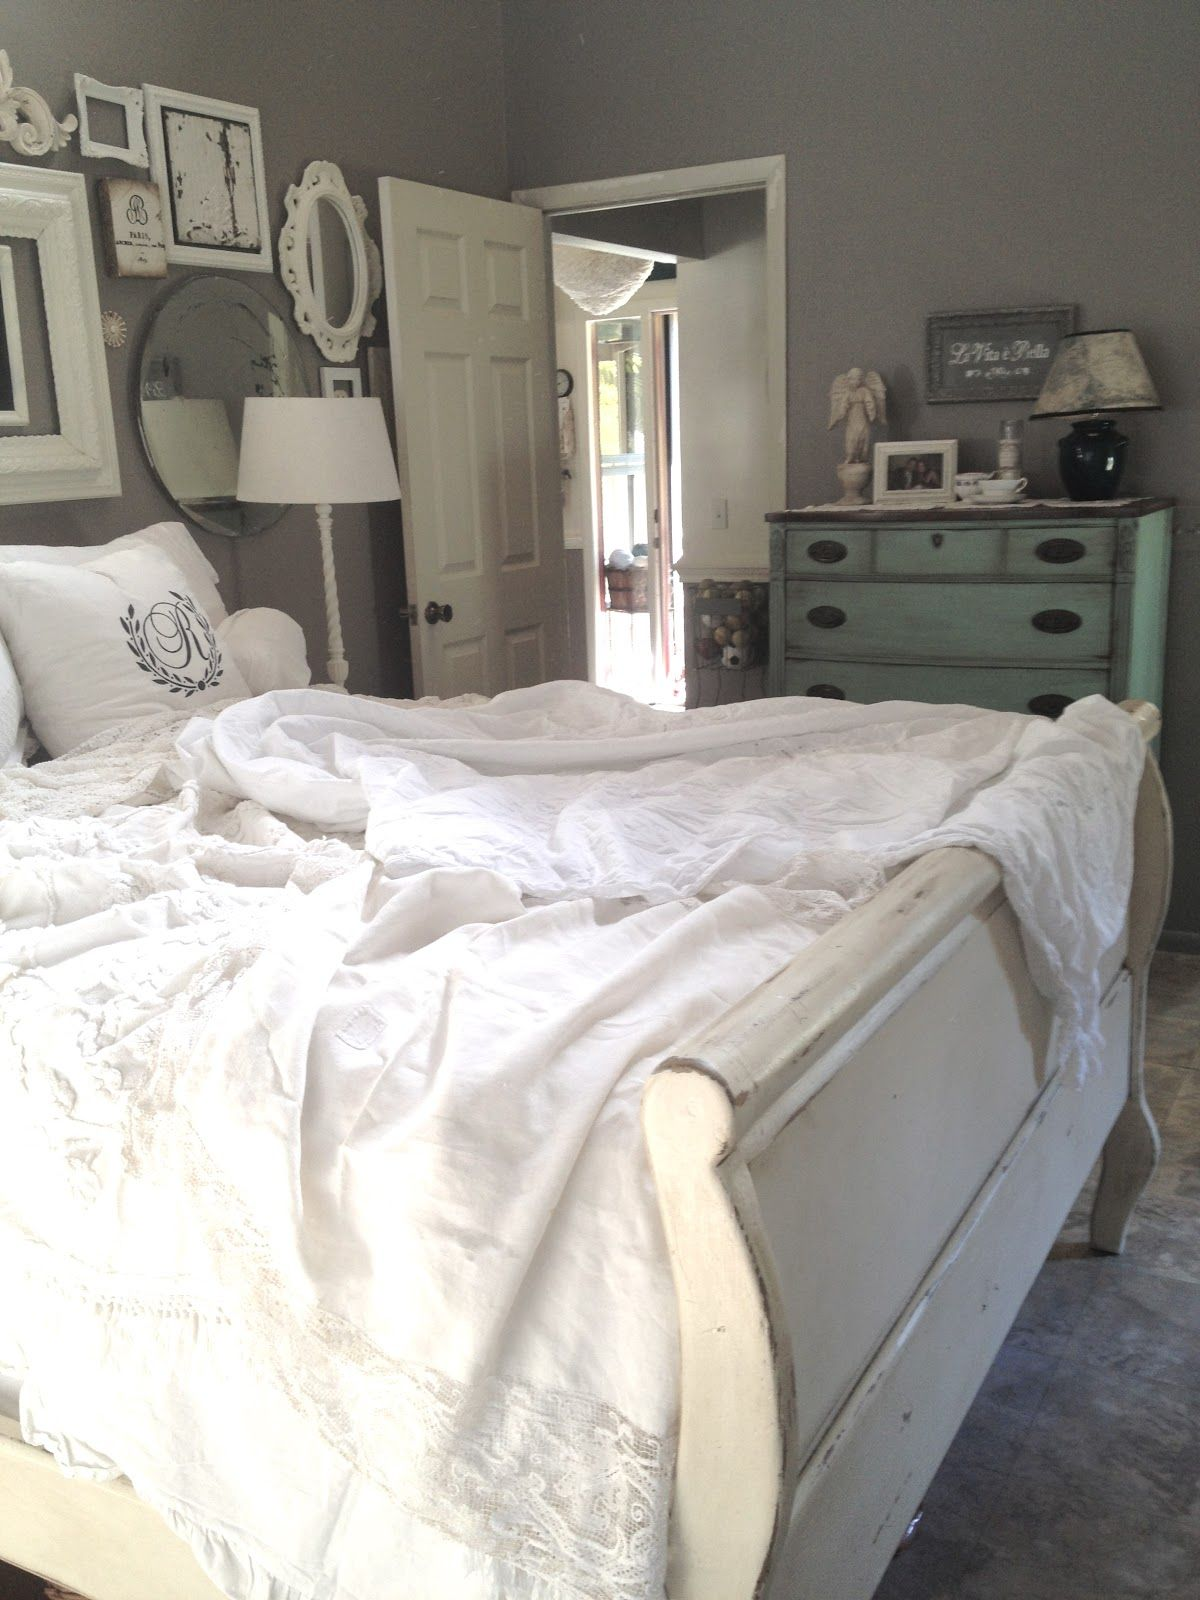 White linens, gray walls. I love this so much!! My walls